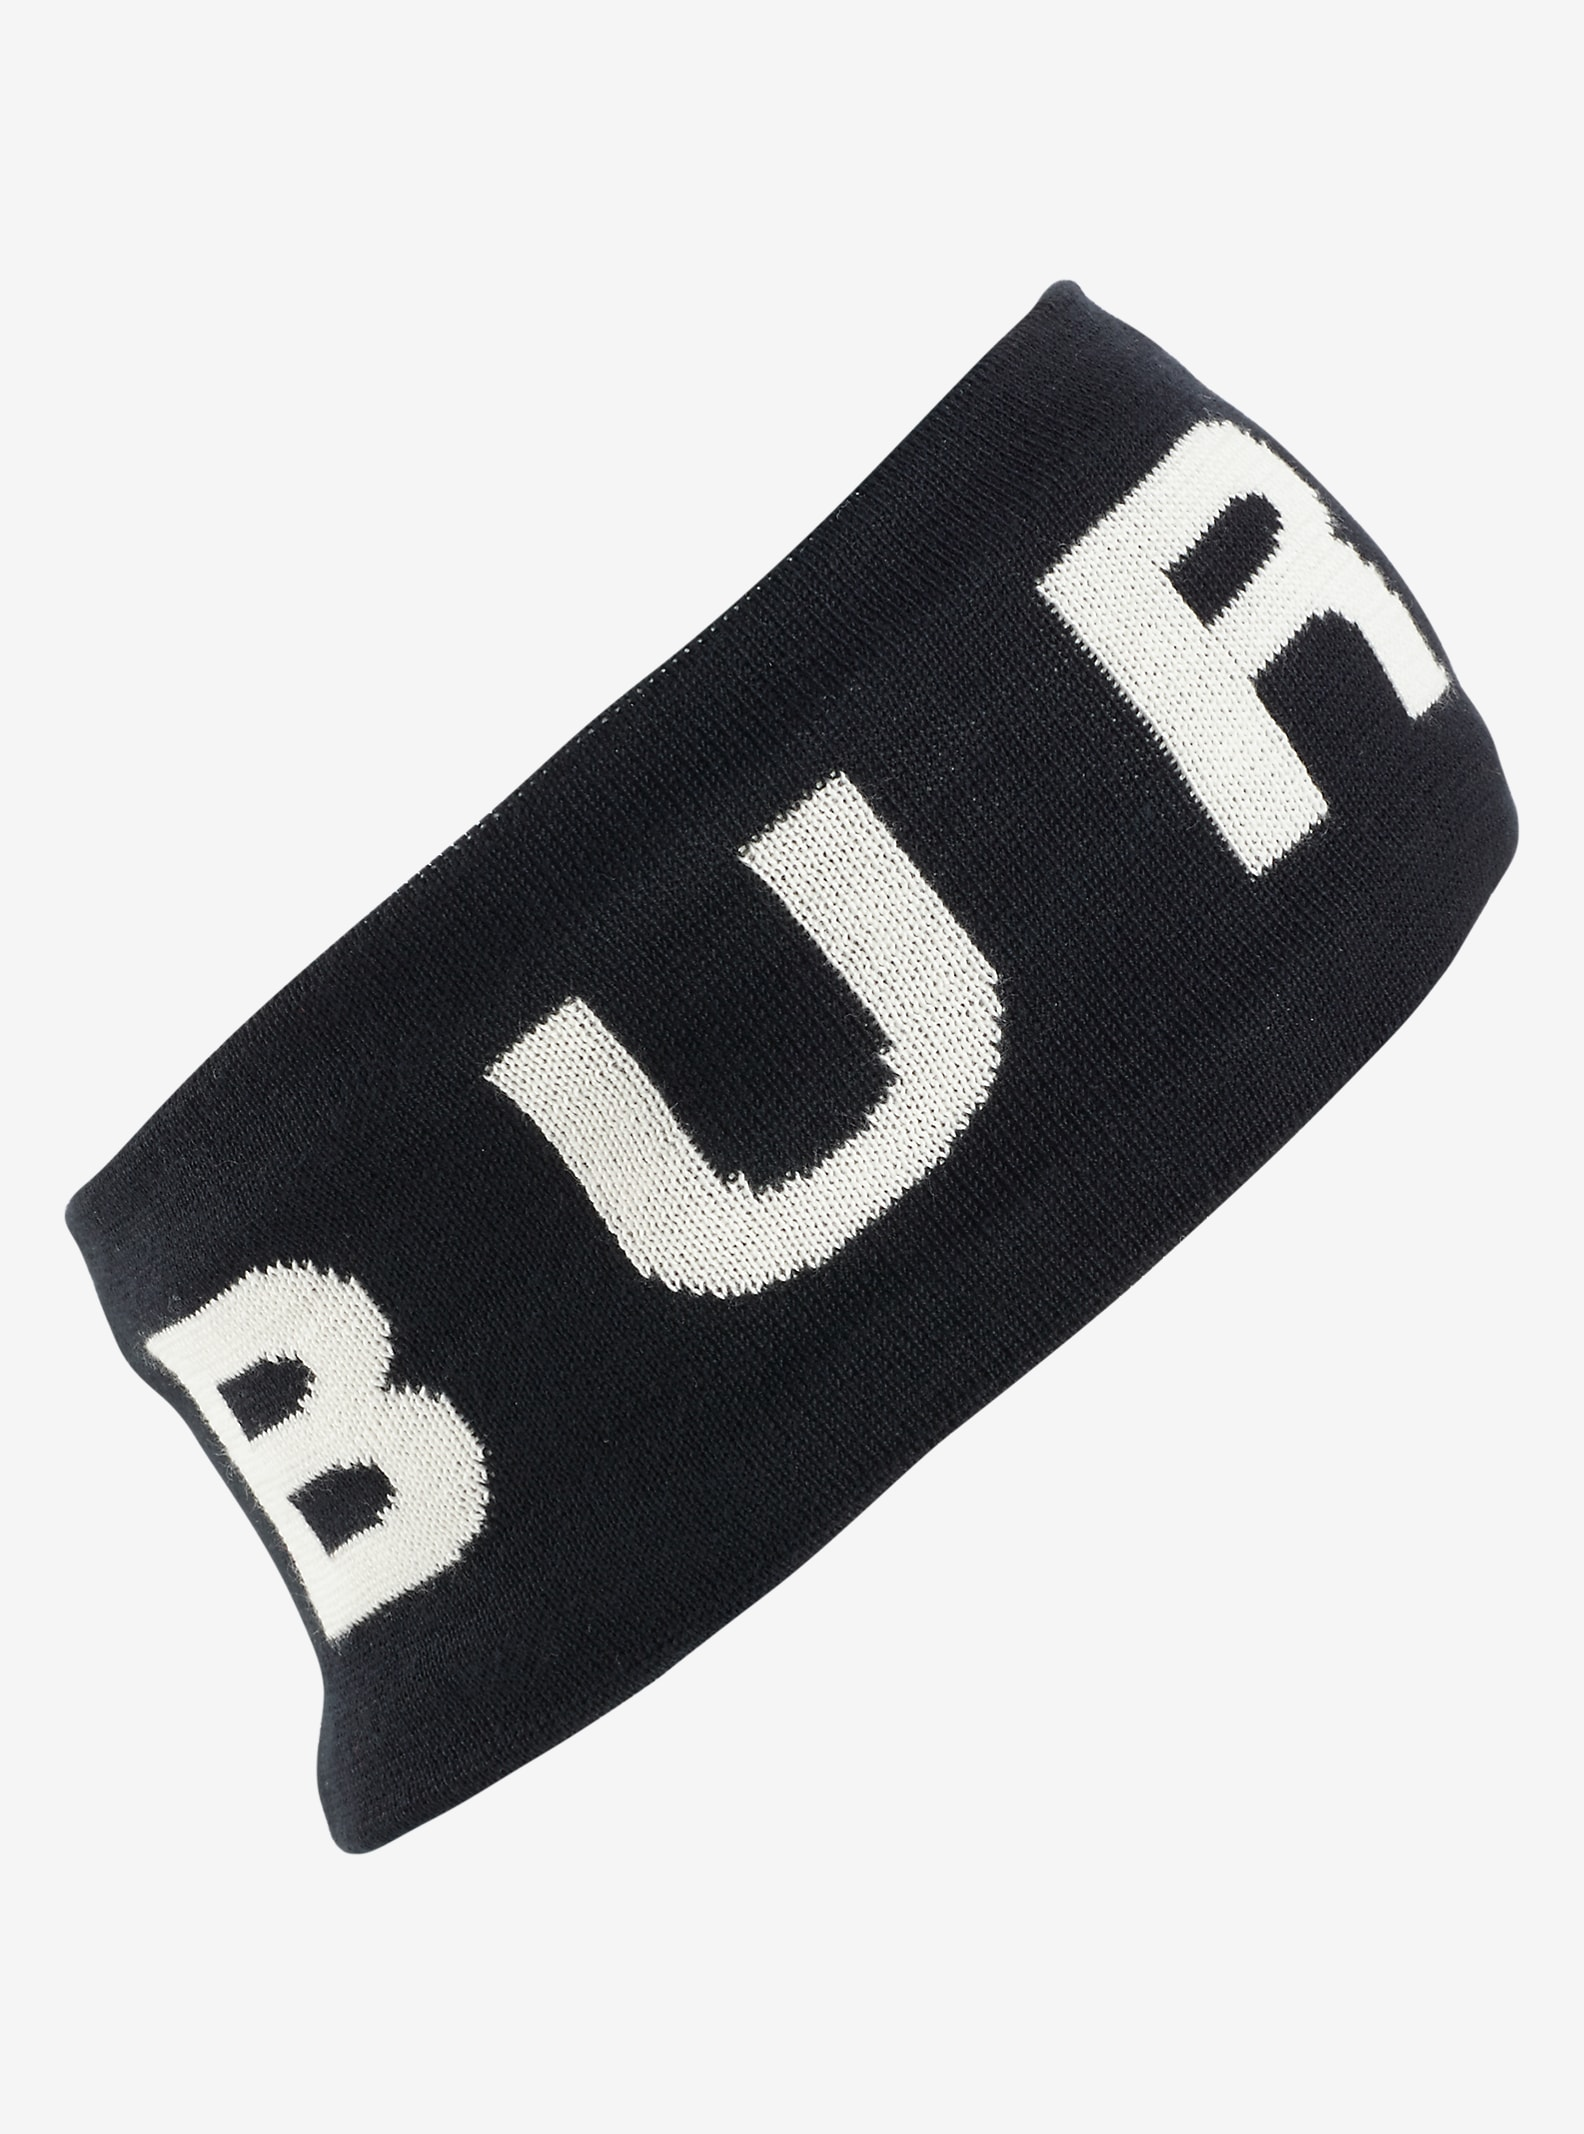 Burton Poledo Headband shown in Wordmark